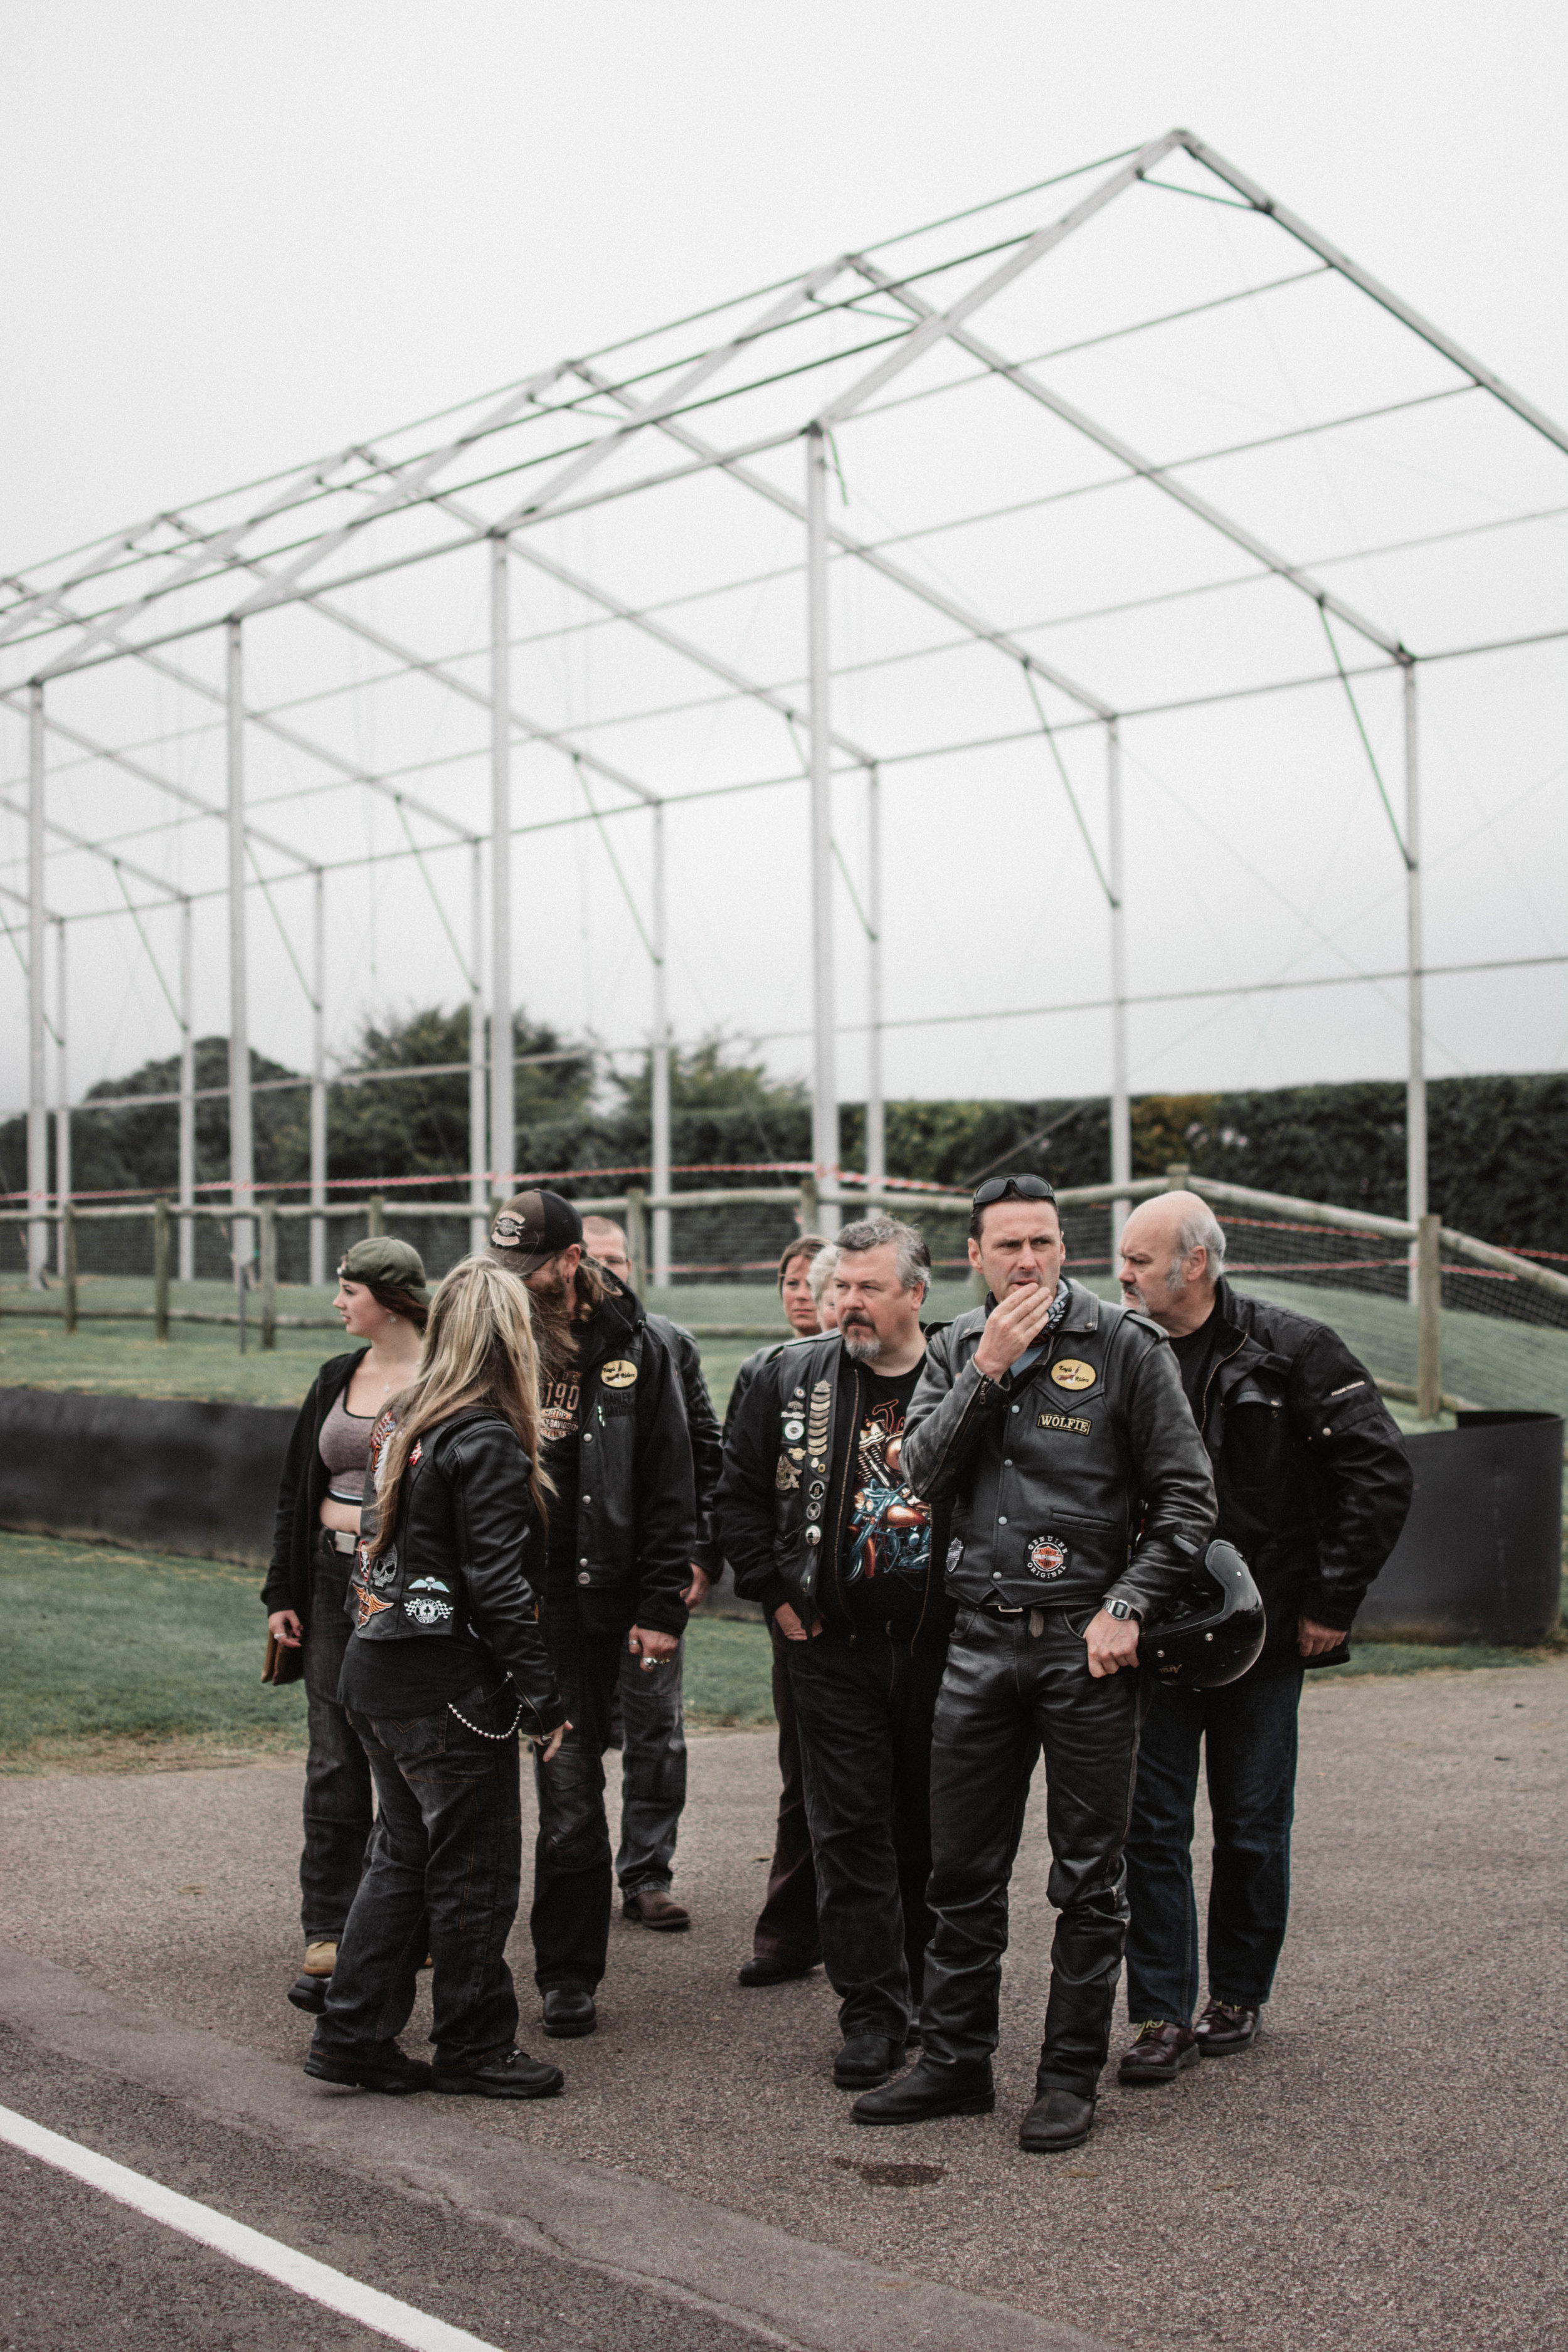 A group of bikers at Goodwood Racecourse's Breakfast Club: A showcase of classic vehicles owned by members across the country.